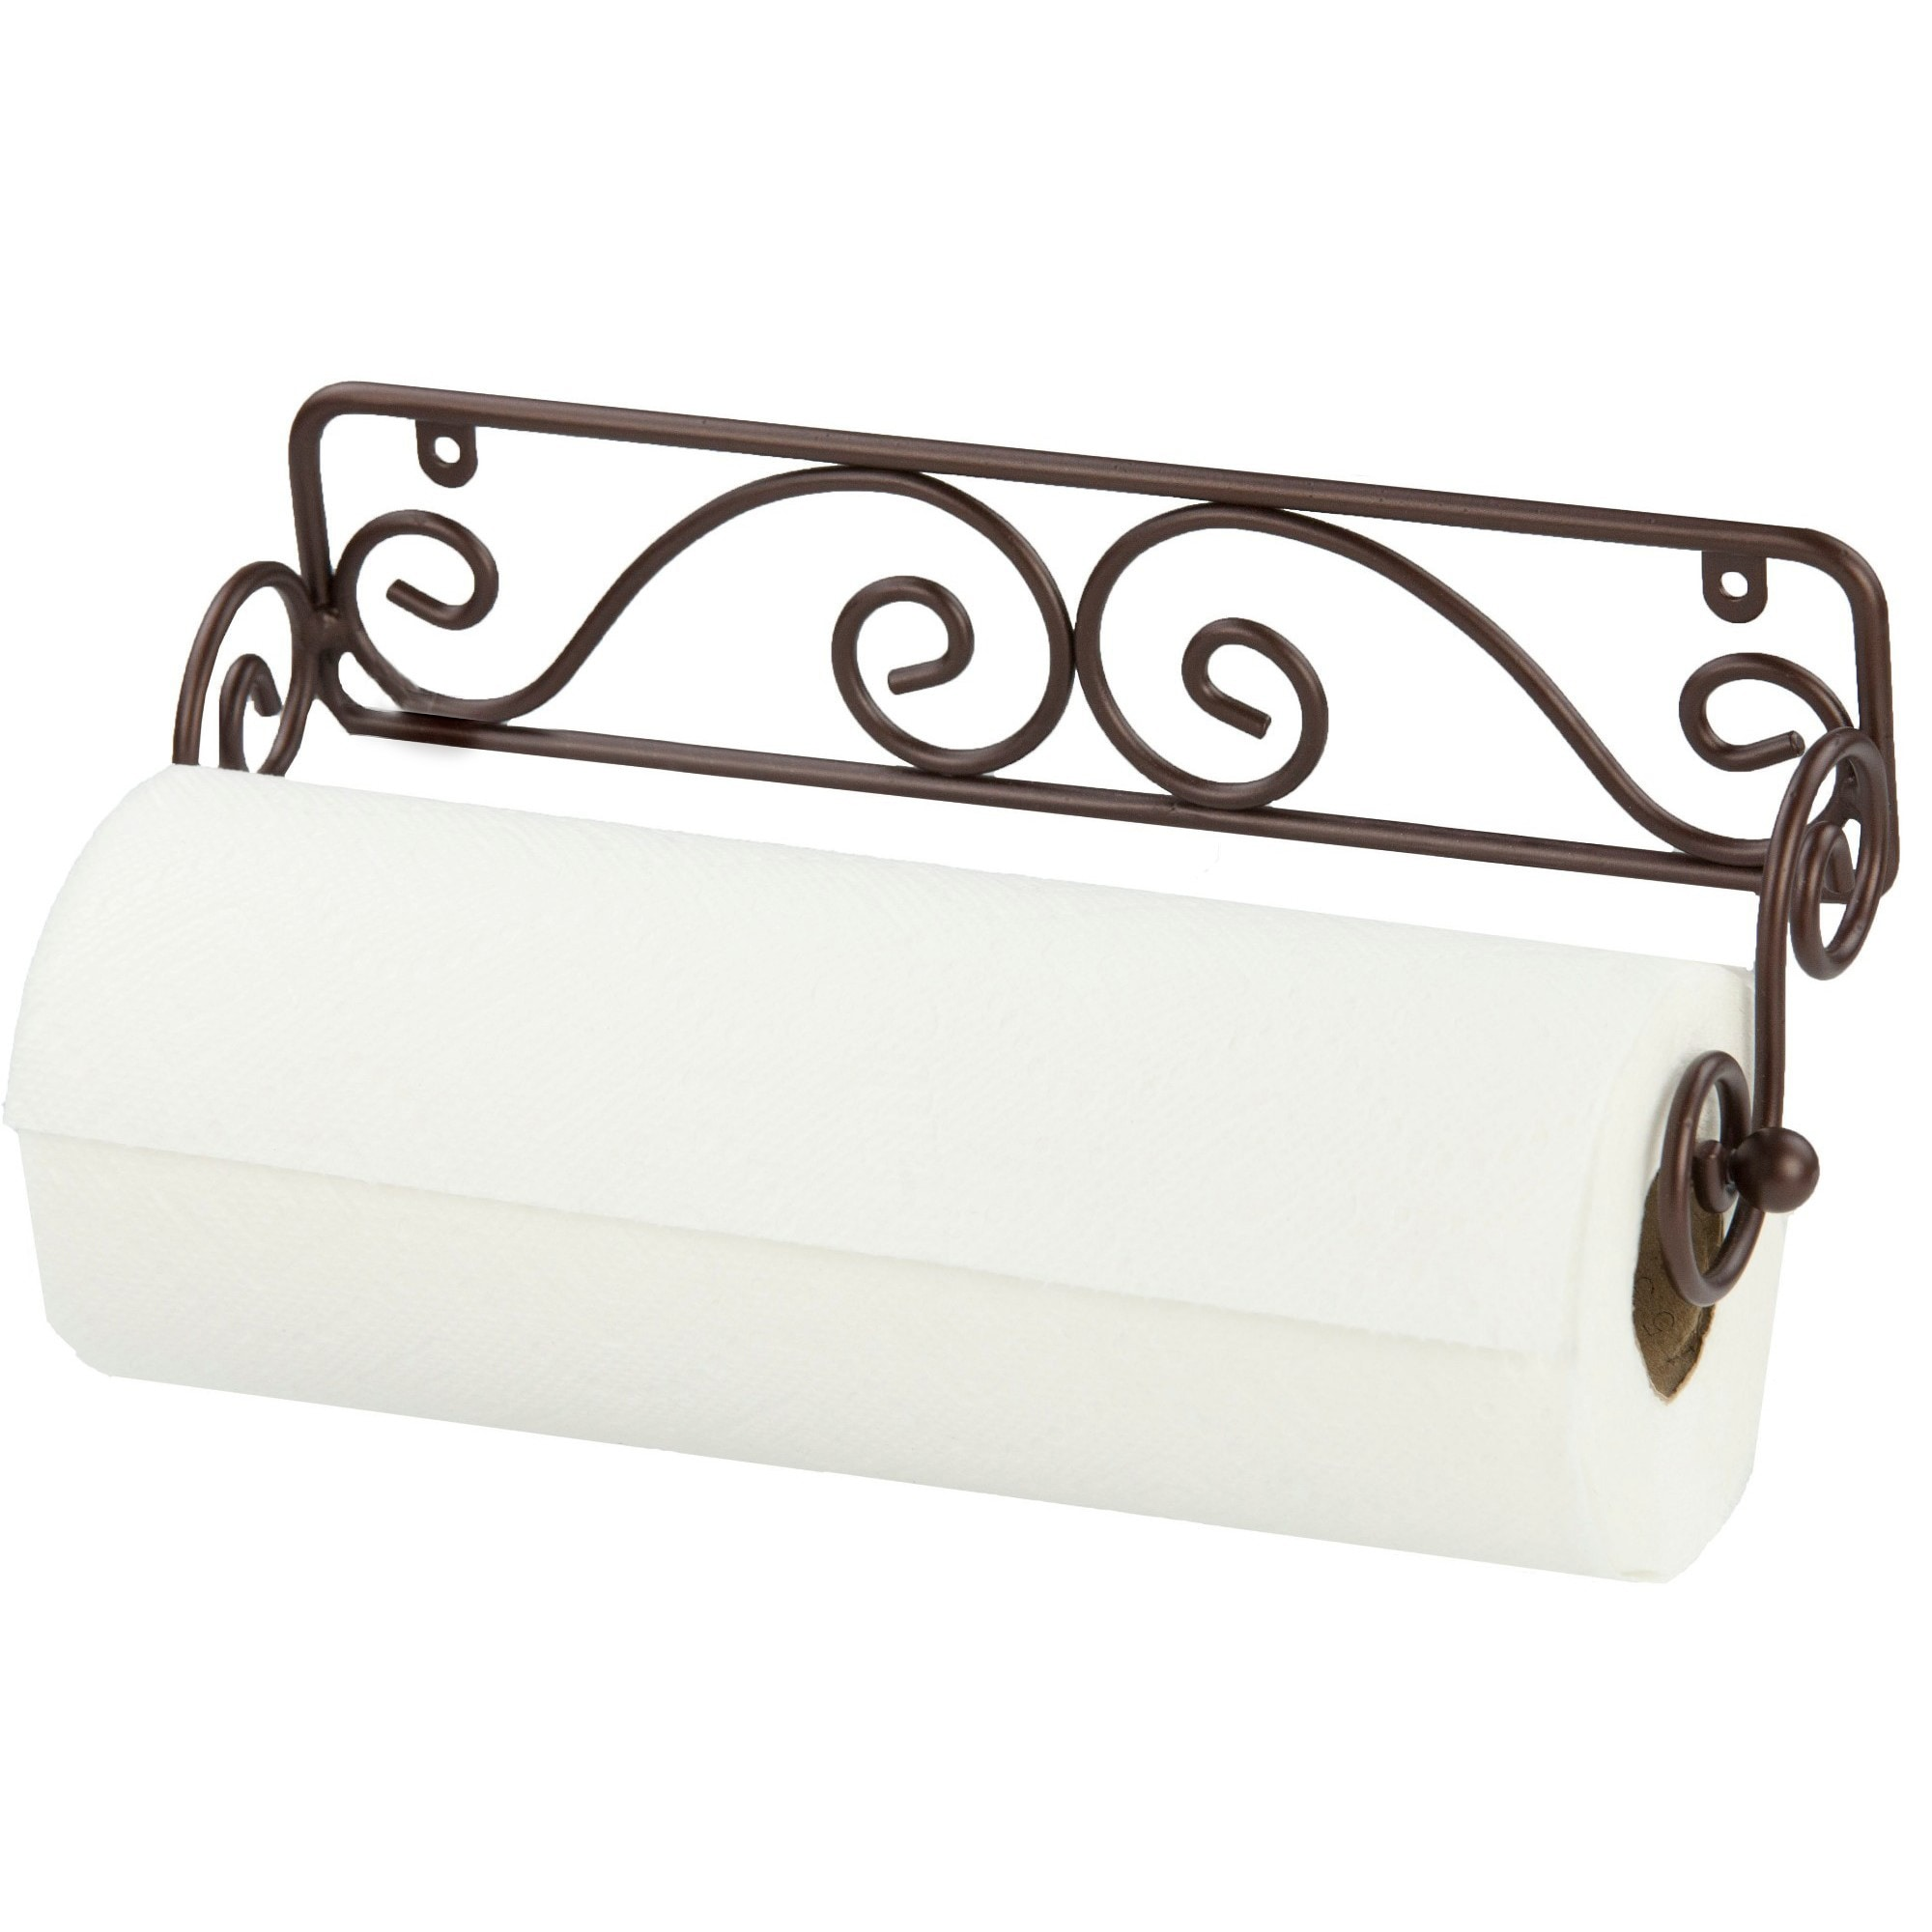 Home Basics Scroll Collection Steel Wall Mounted Paper Towel Holder